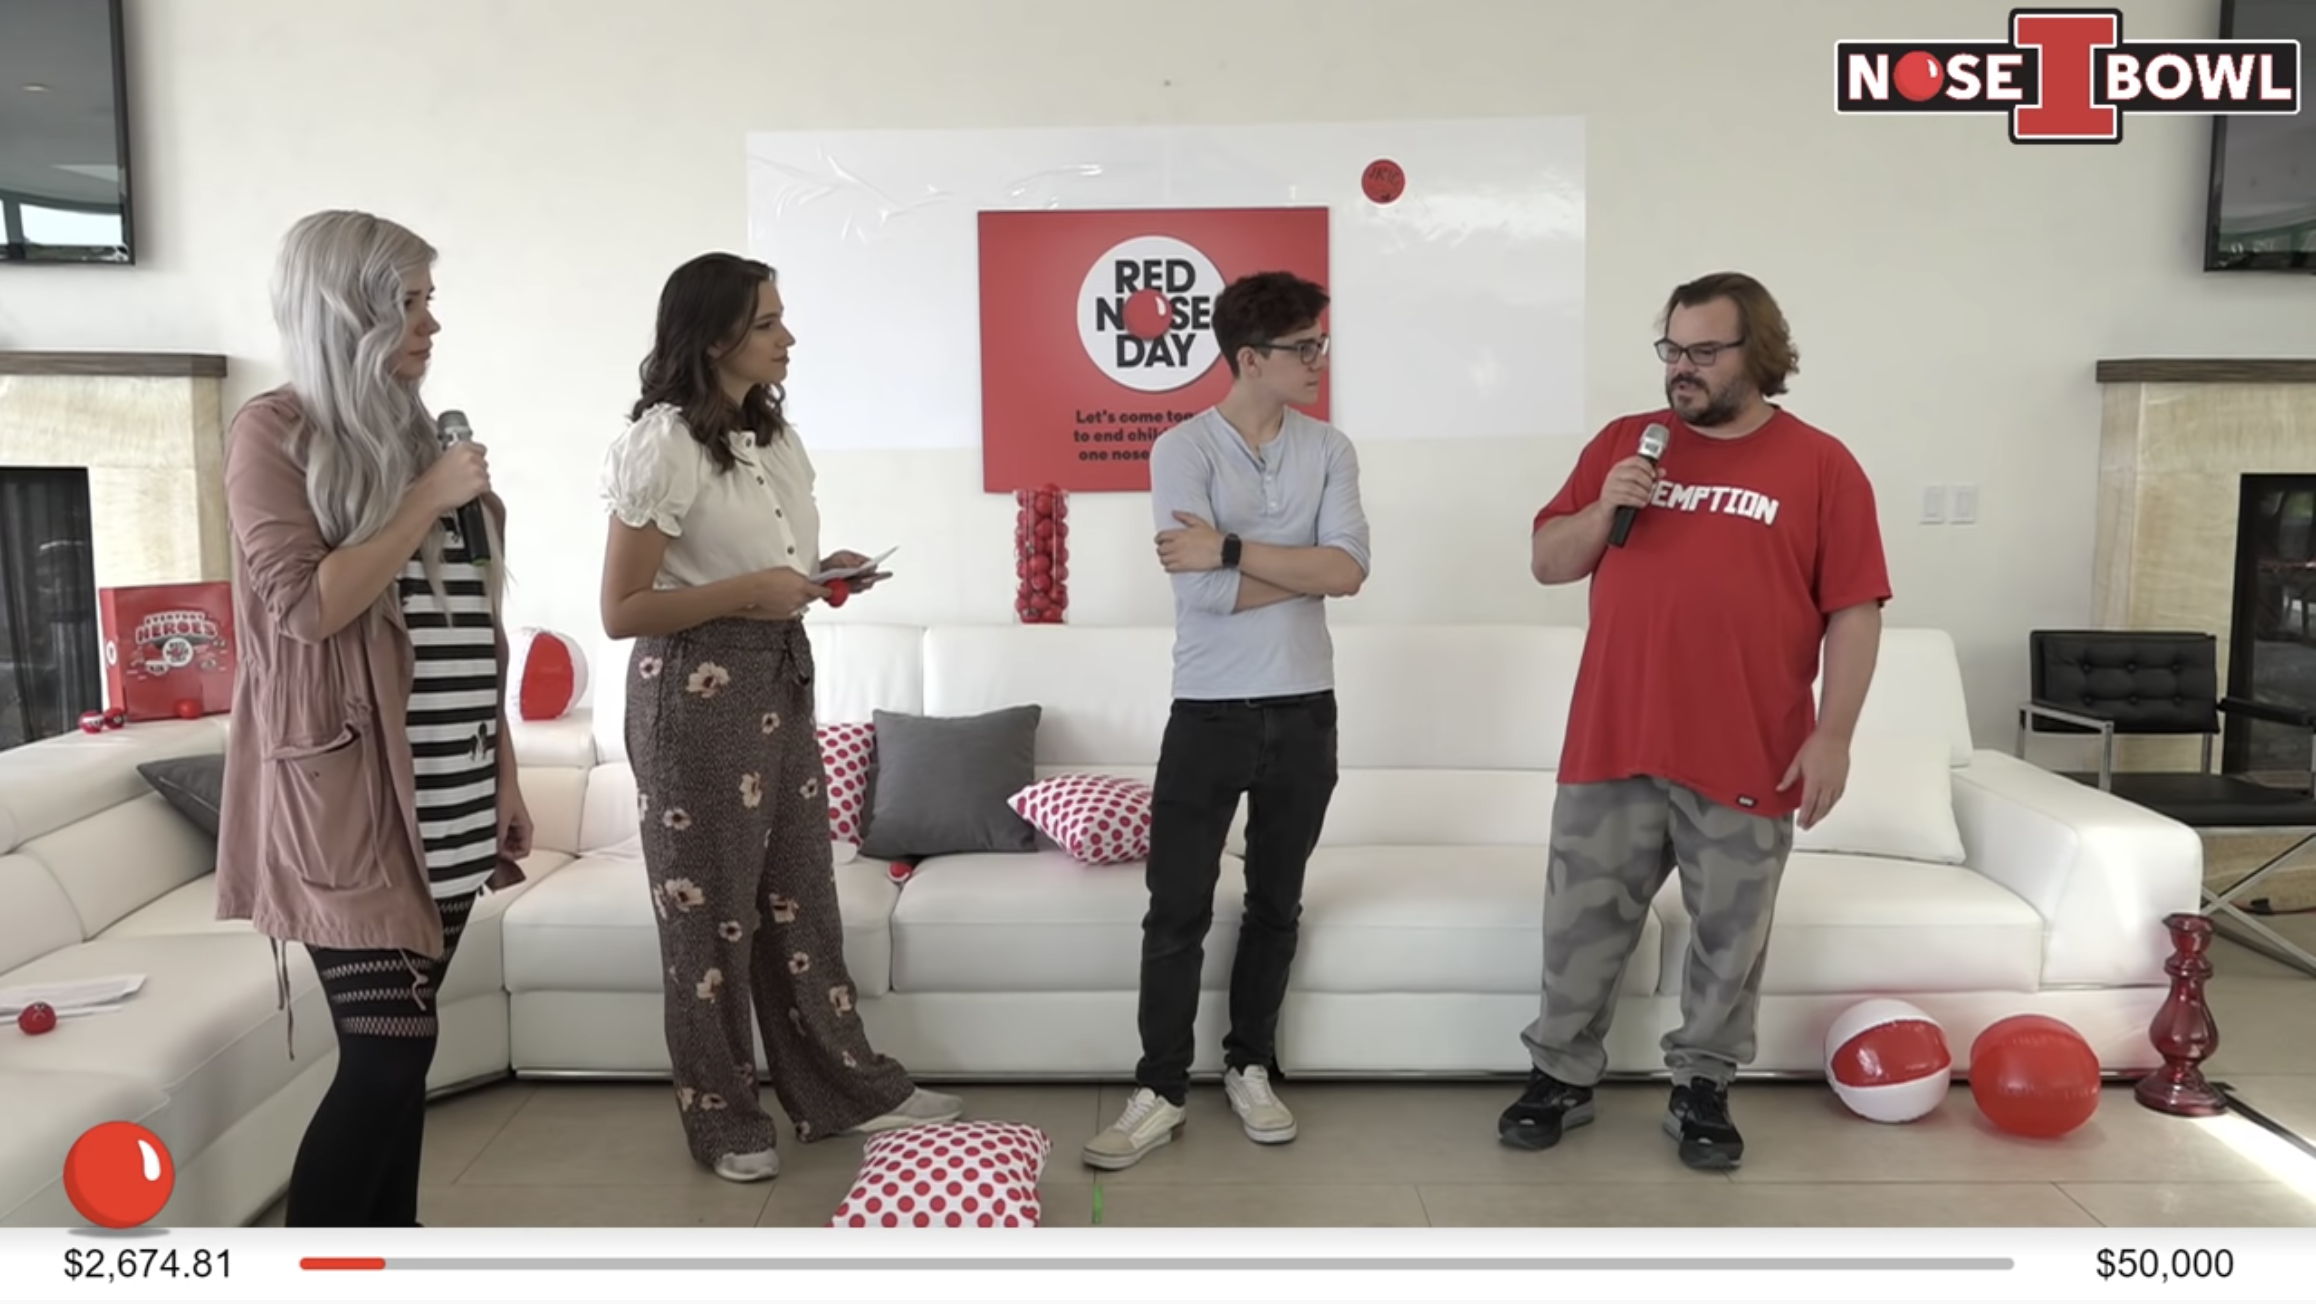 Still image of Red Nose day livestream. Jack Black holds a microphone and talks to three other guests. A live donation meter at the bottom indicates that they have raised $2,674.81 a $50,000 goal.